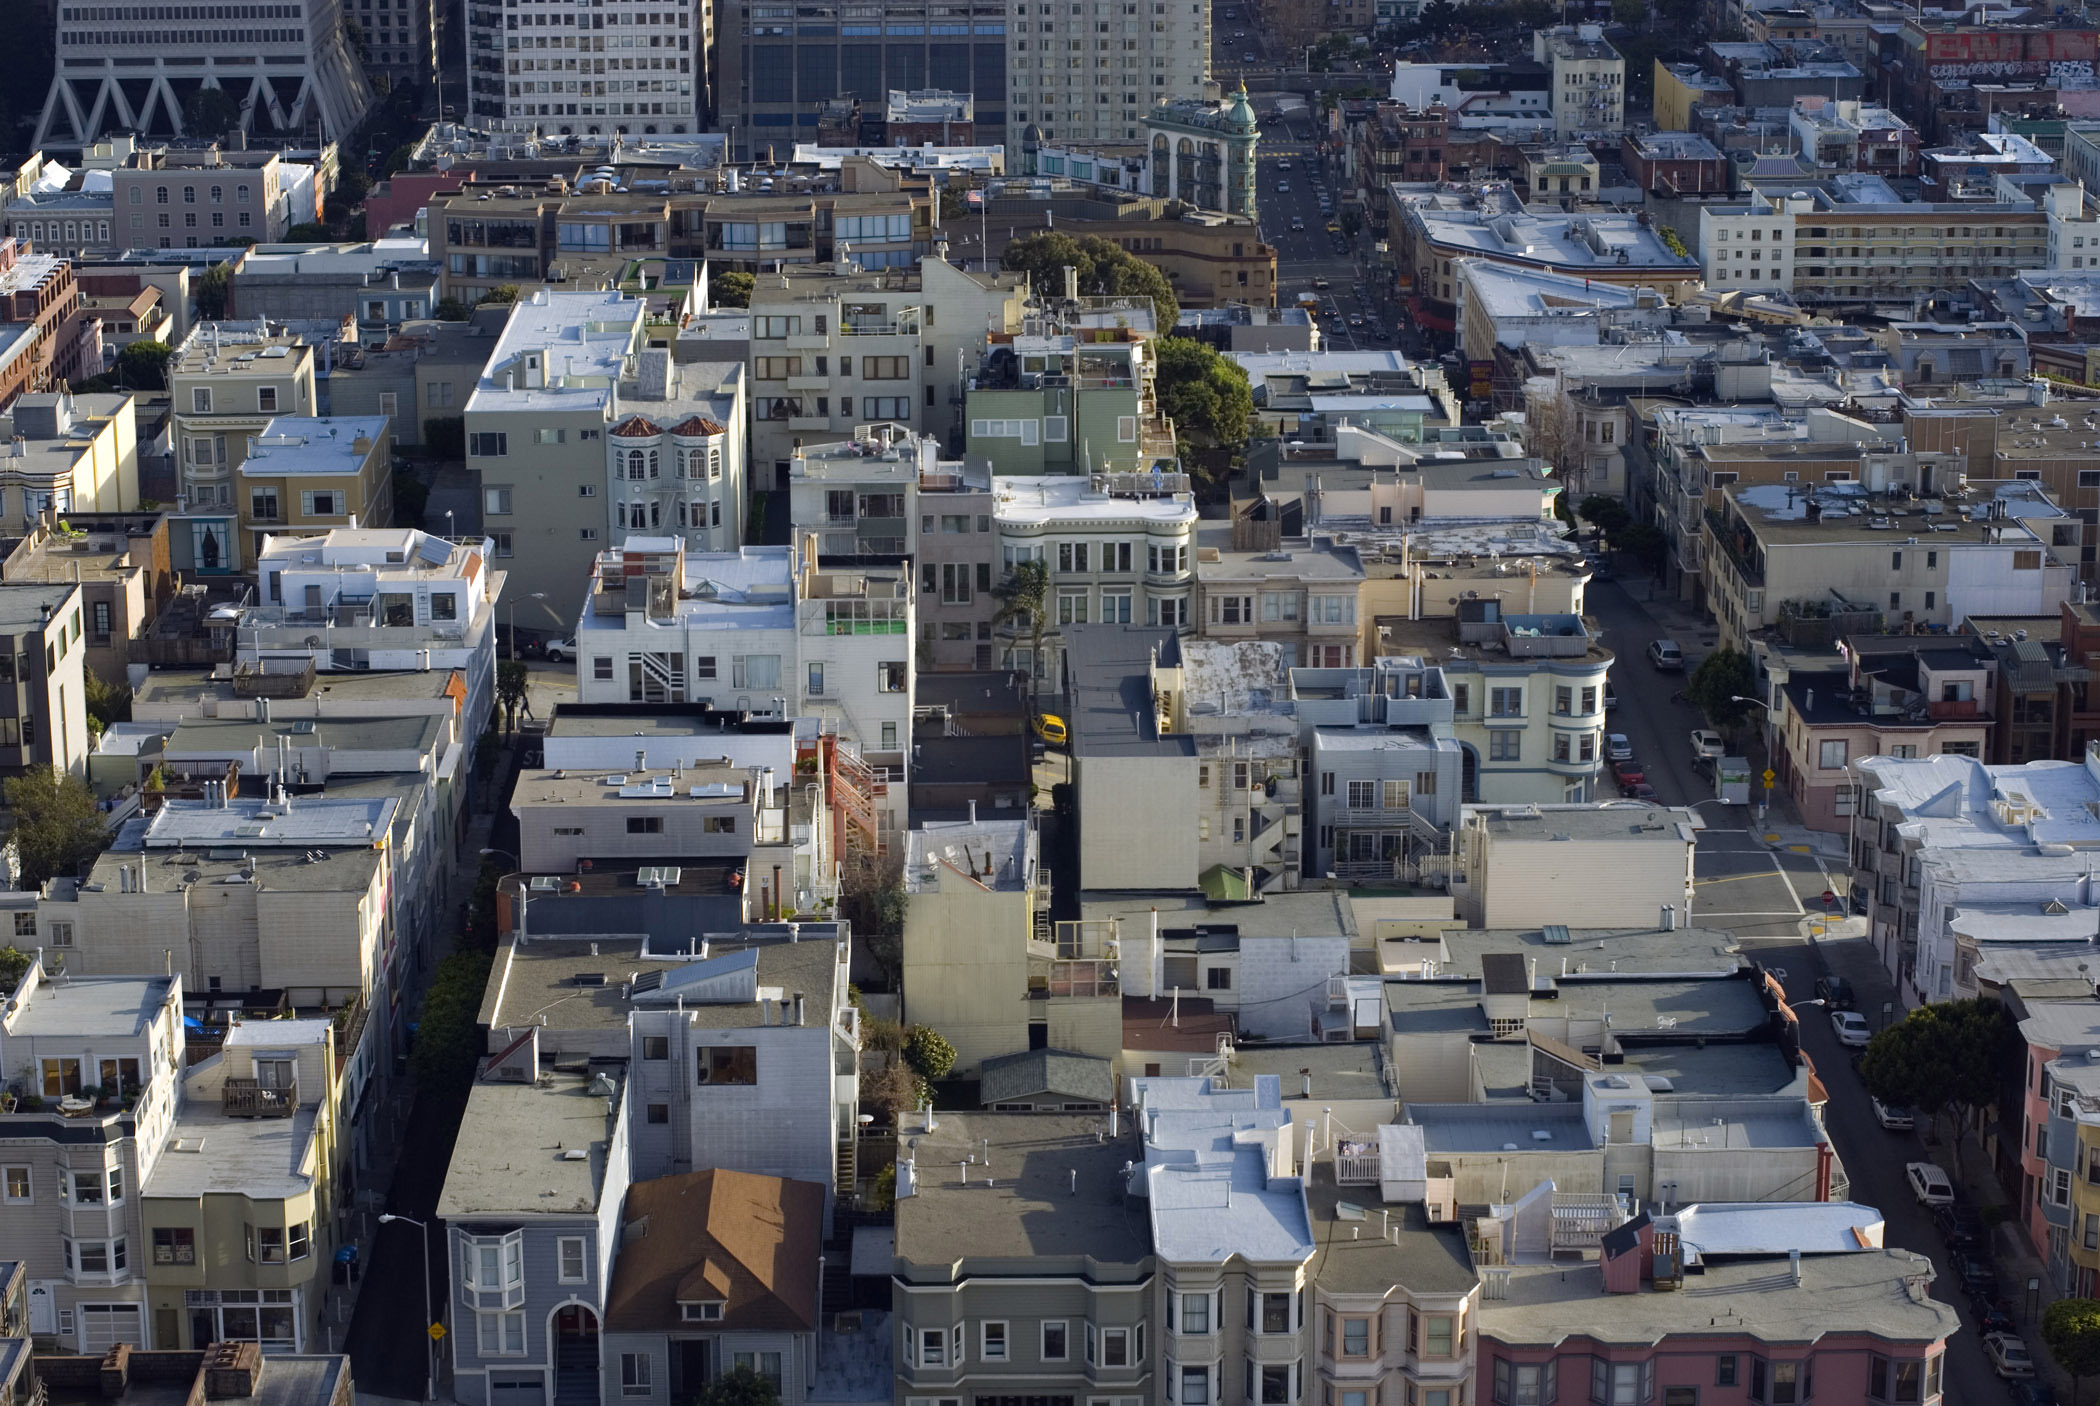 Aerial view over San Francisco, California, USA, rooftops in an urban sprawl of high-rise buildings